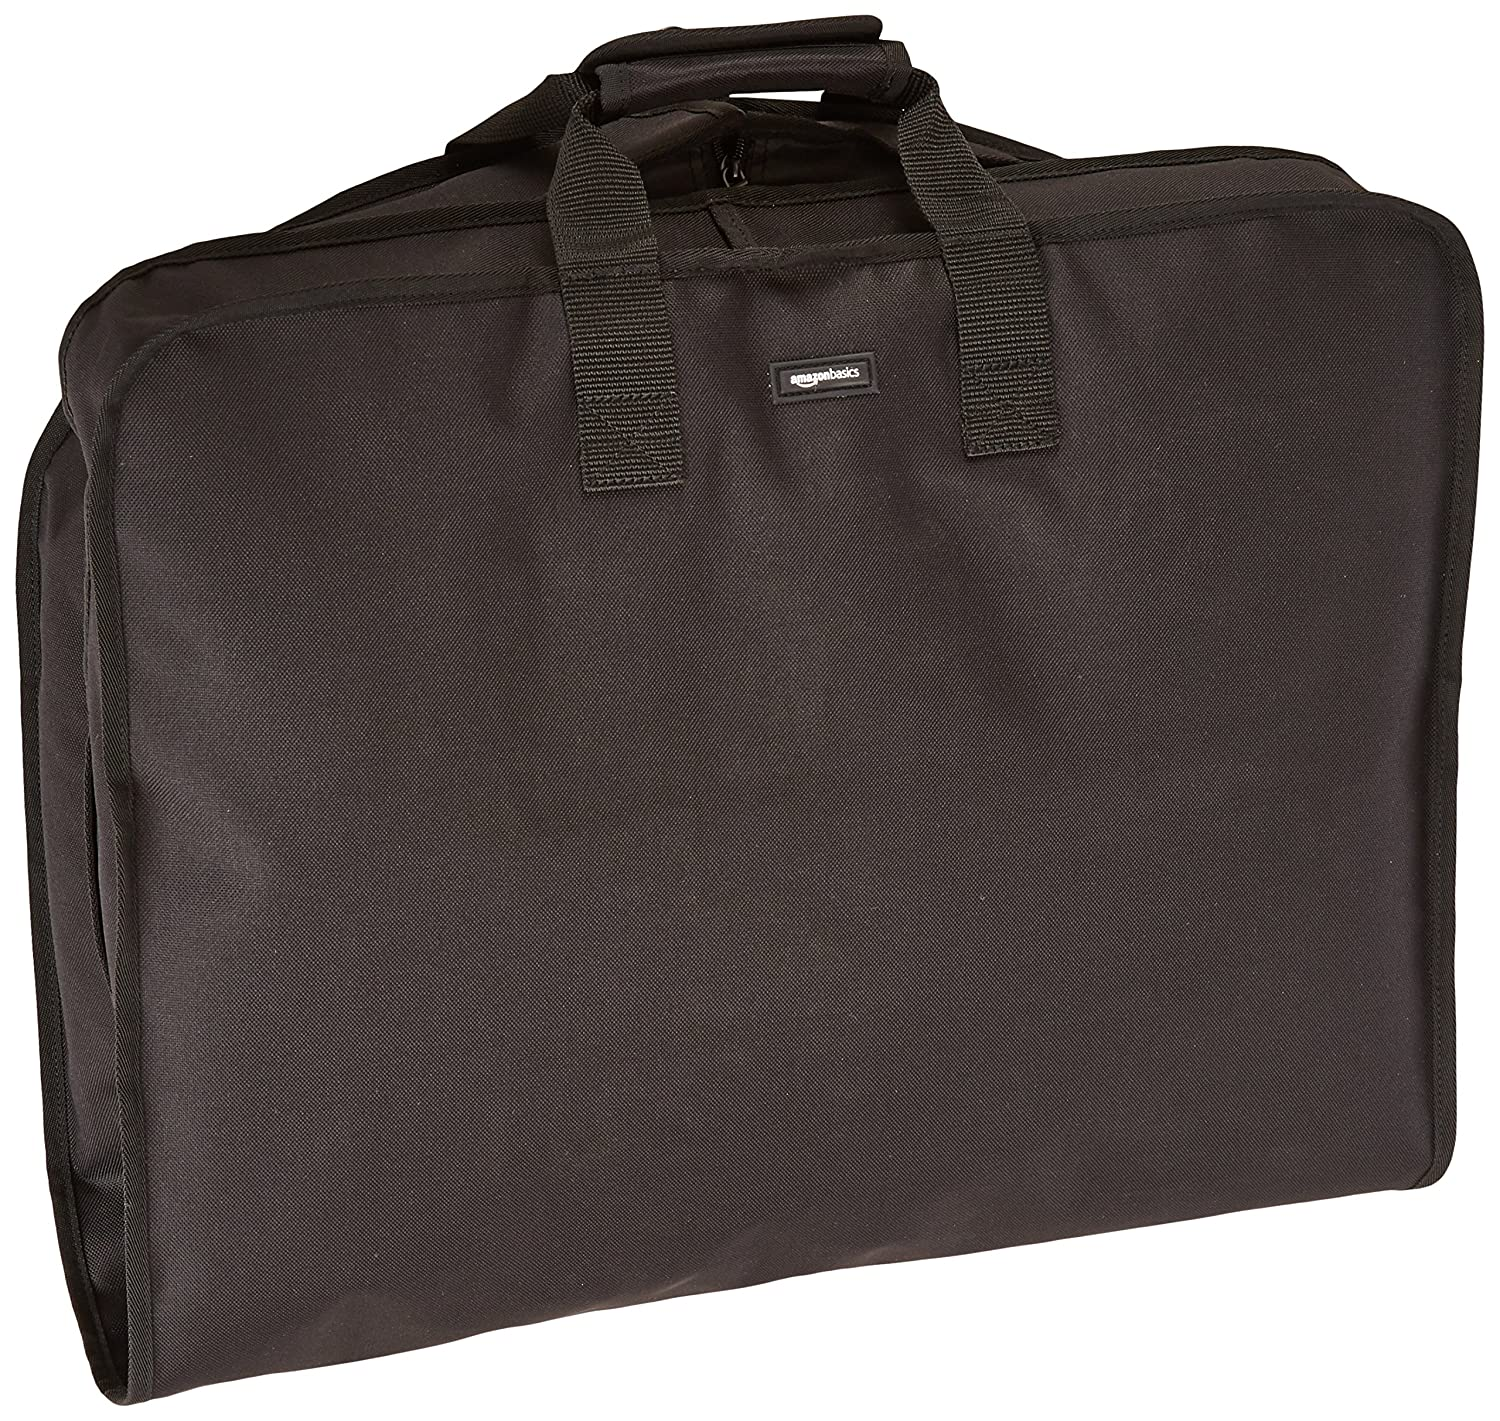 AmazonBasics Travel Garment Bag, Black ZH1601005R3